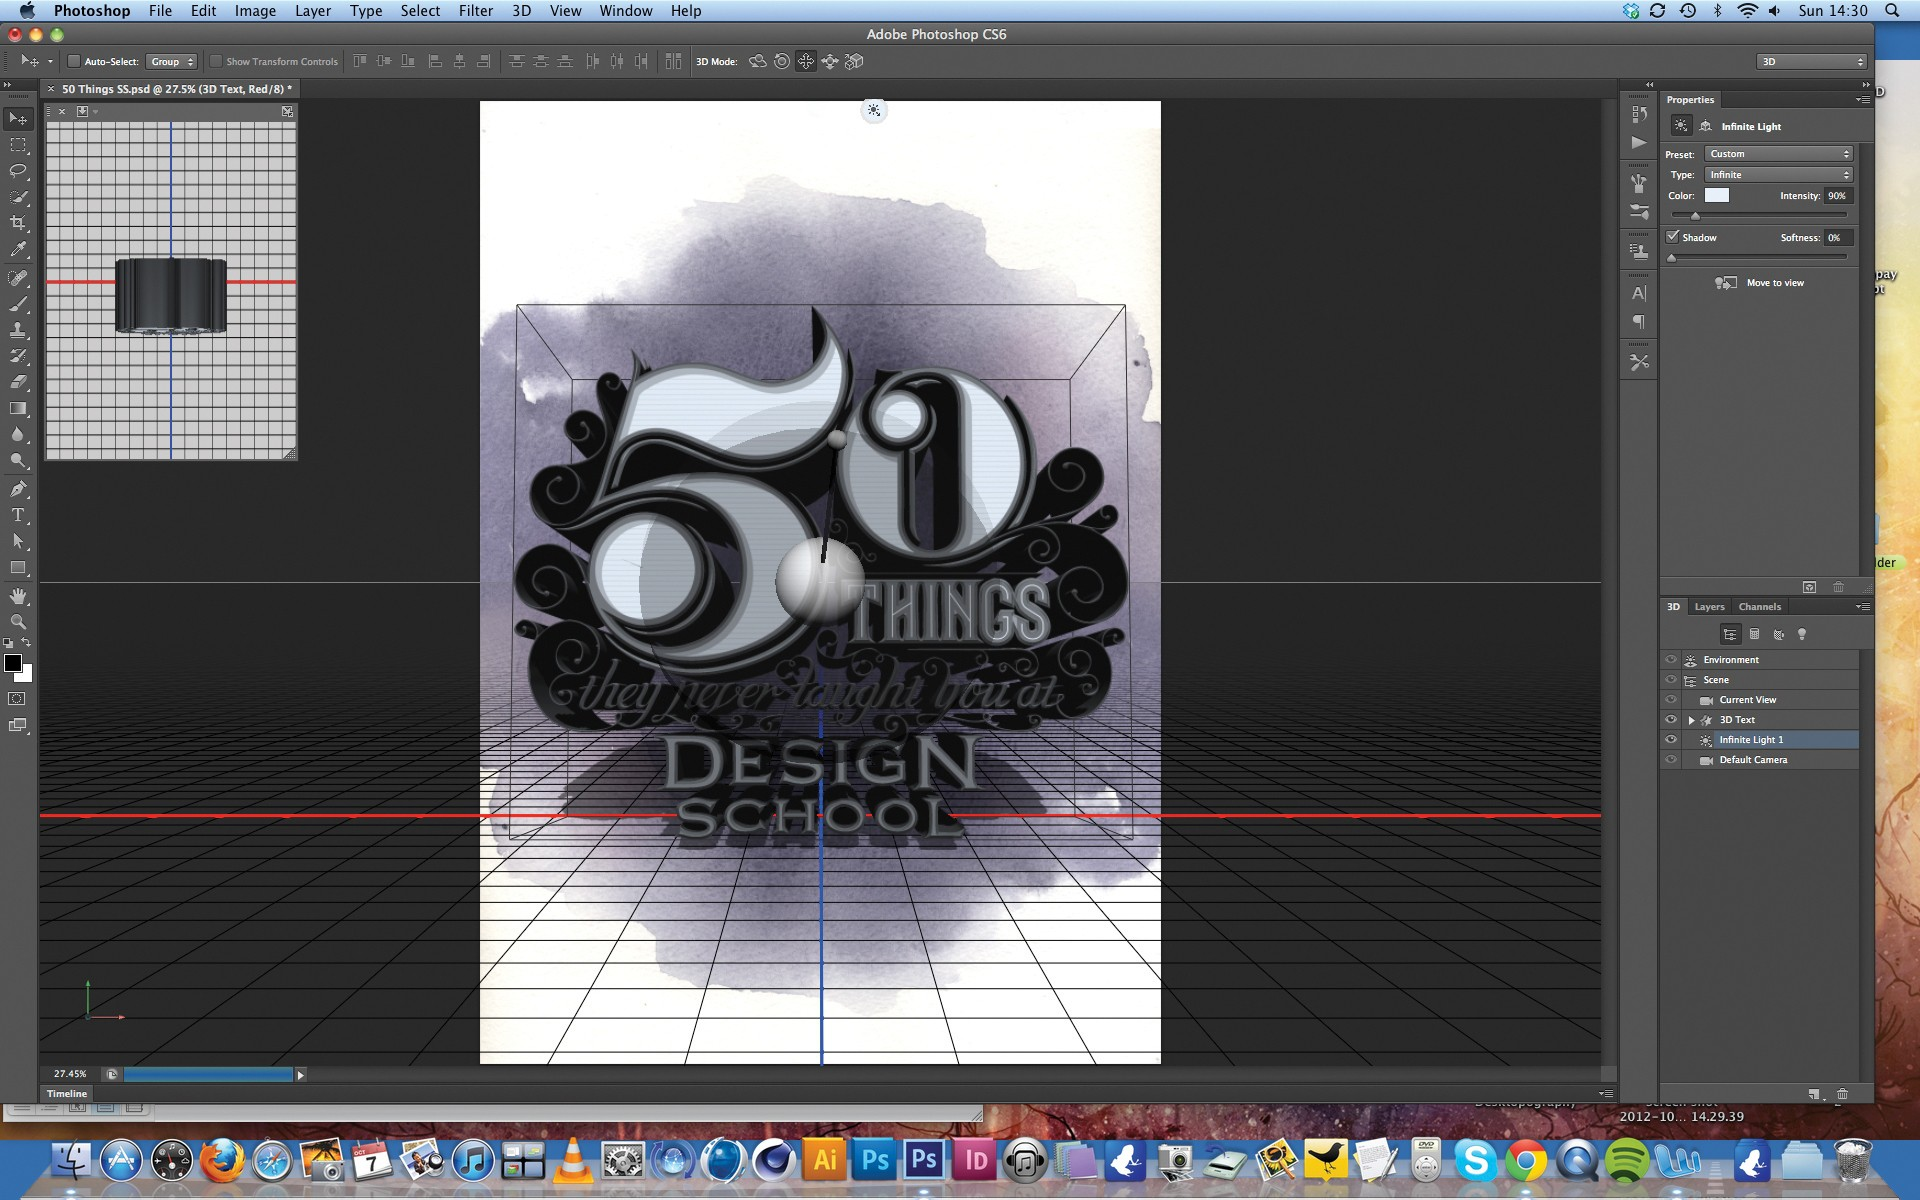 how to create an action in photoshop cs6